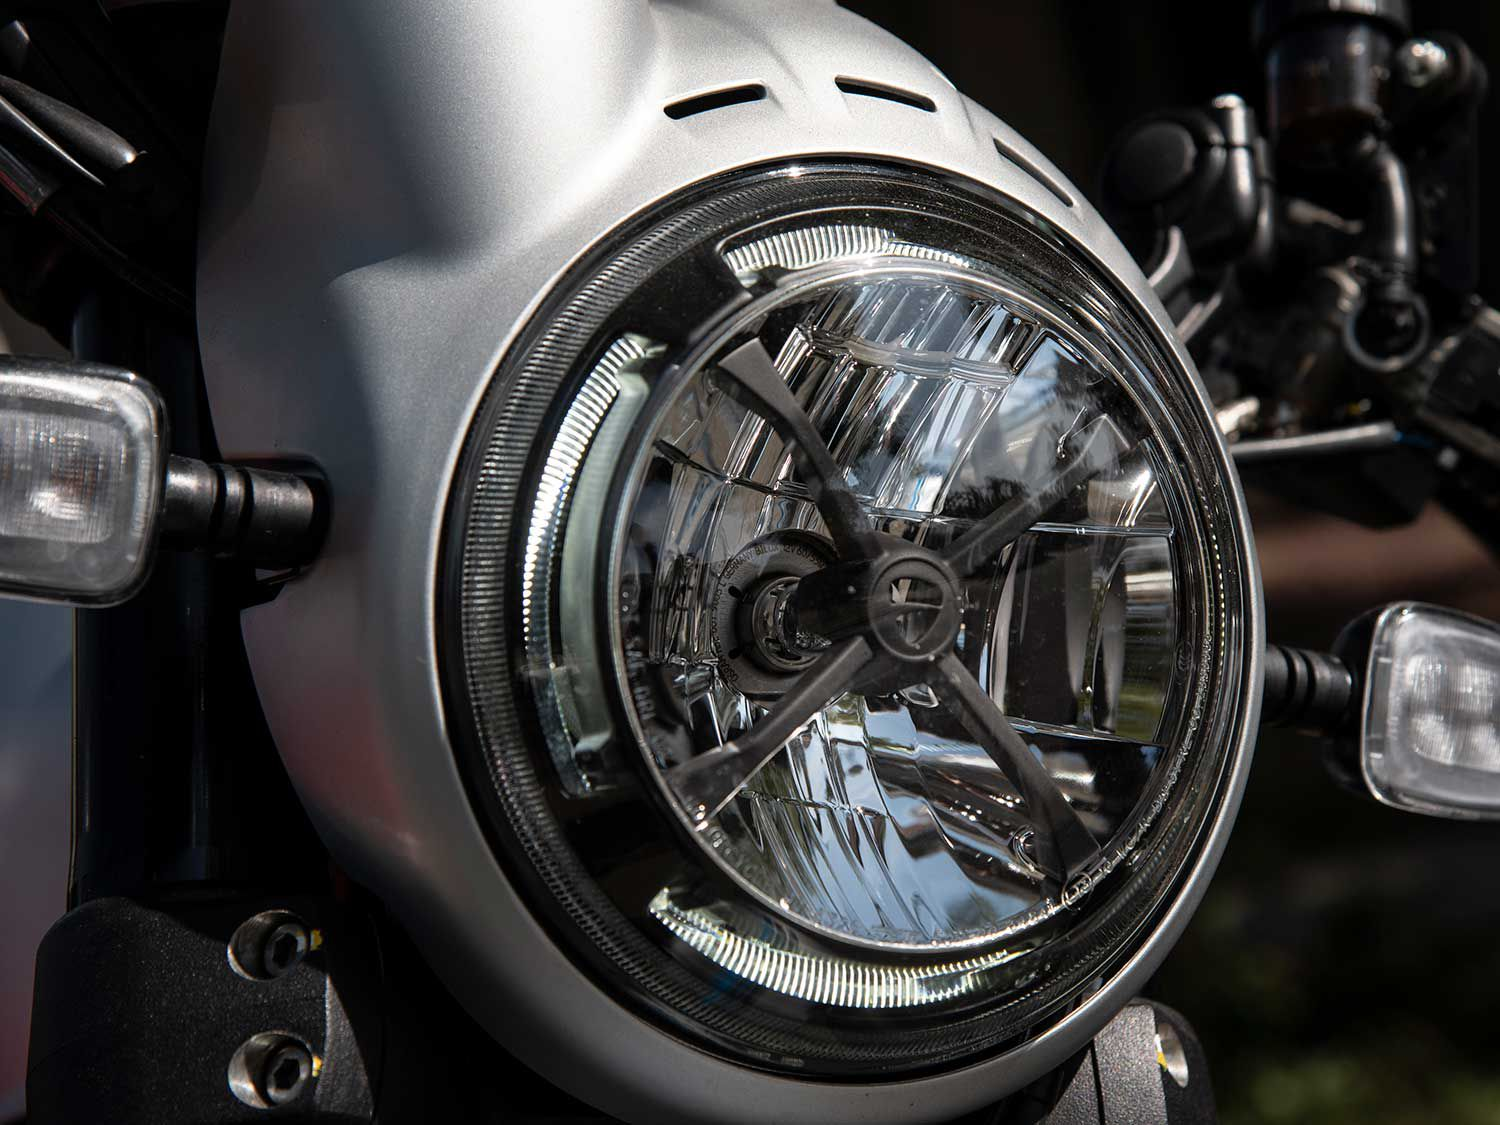 X marks the spot of the LED headlamp, offering an attractive way to demarcate the Scrambler's nose.